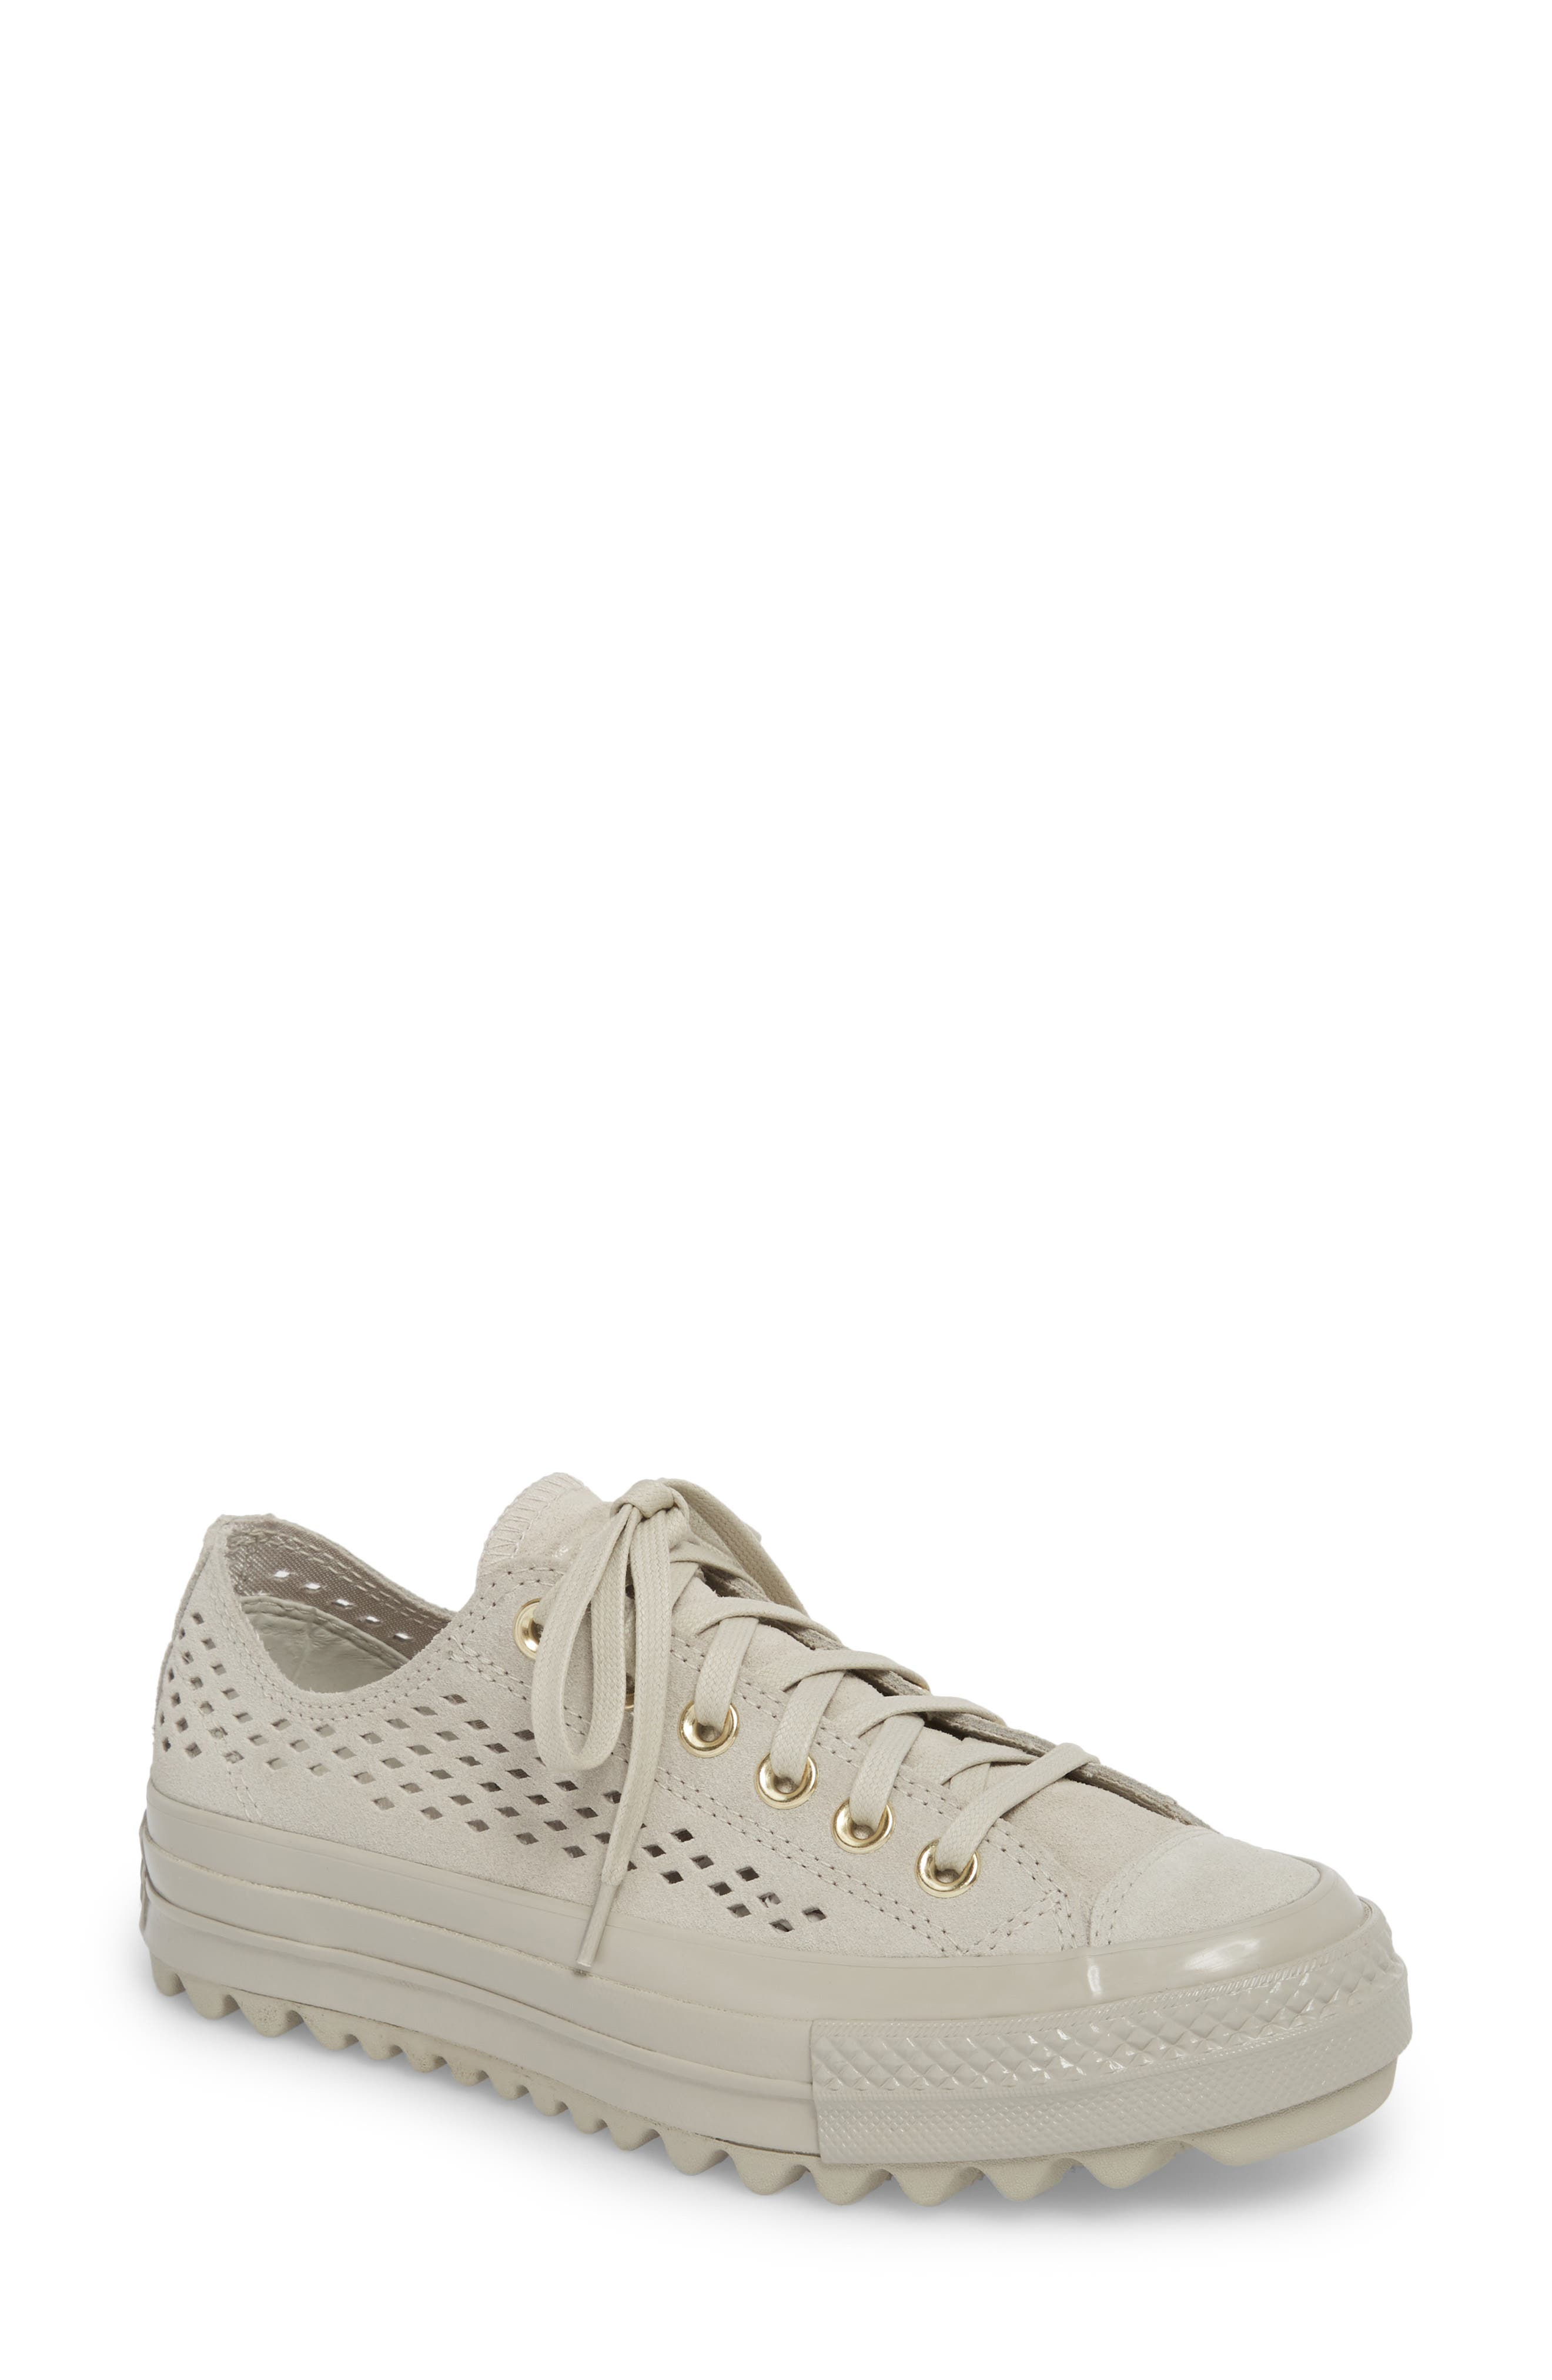 Chuck Taylor<sup>®</sup> All Star<sup>®</sup> Lift Ripple Sneaker,                         Main,                         color, 081